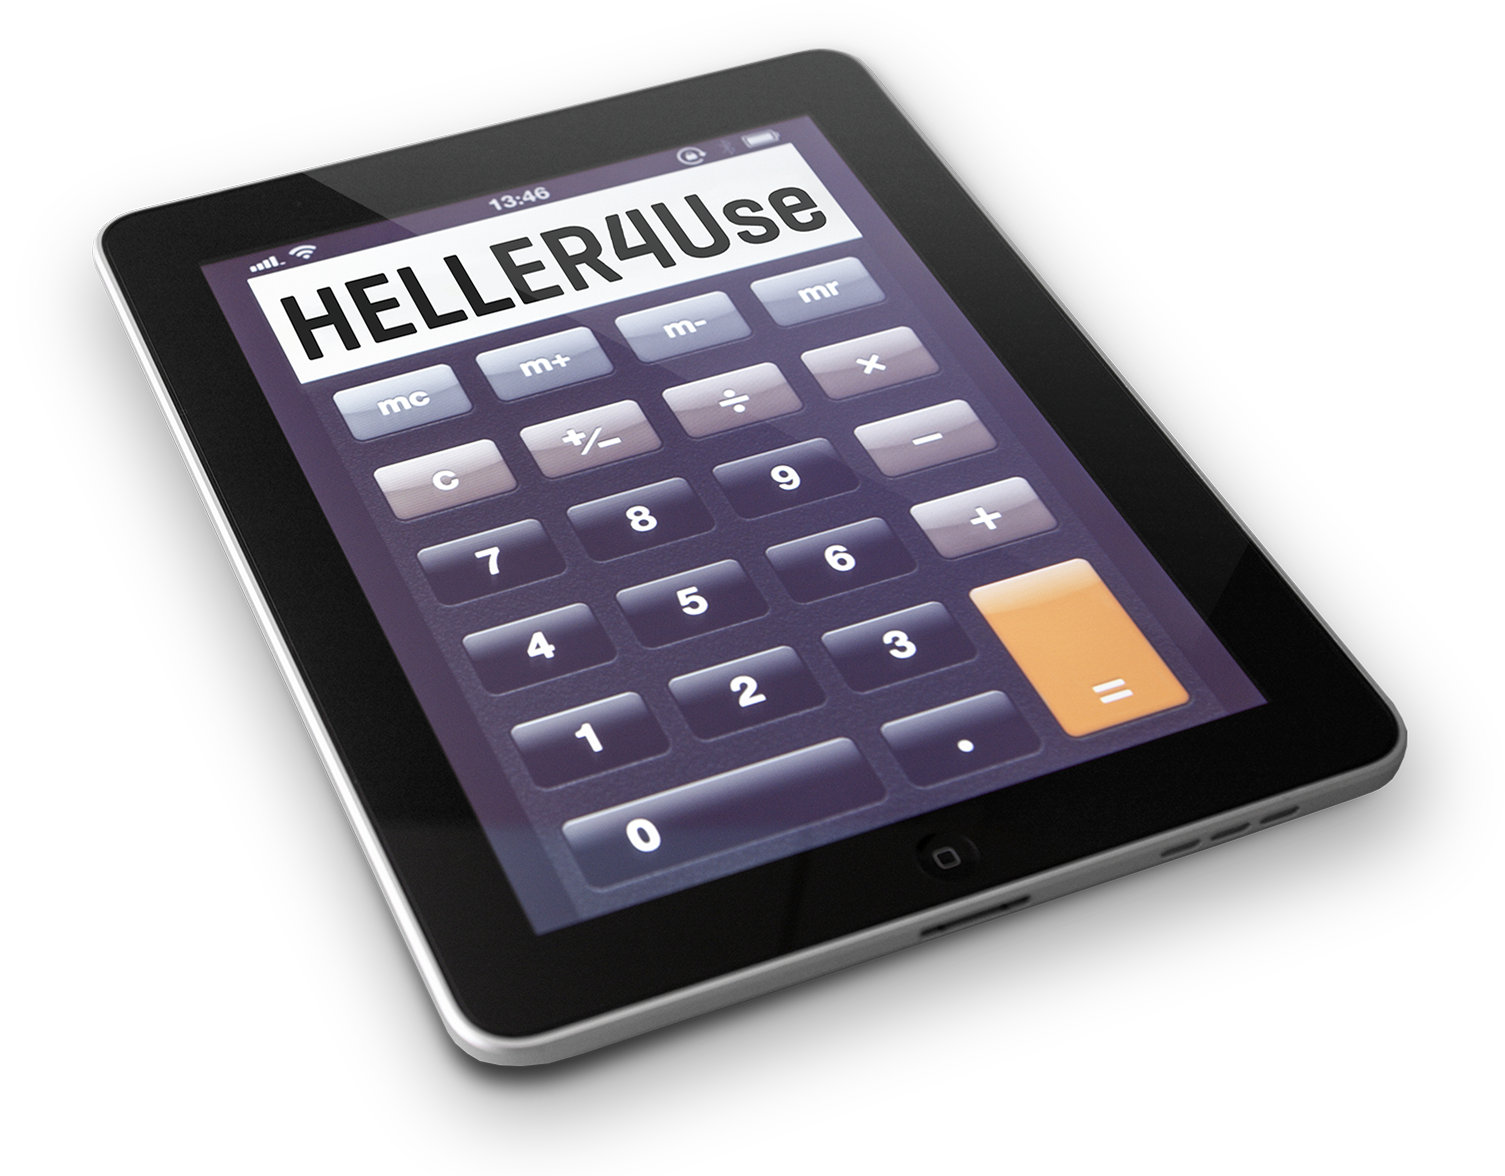 HELLER4Use: Full flexibility, transparency and cost control